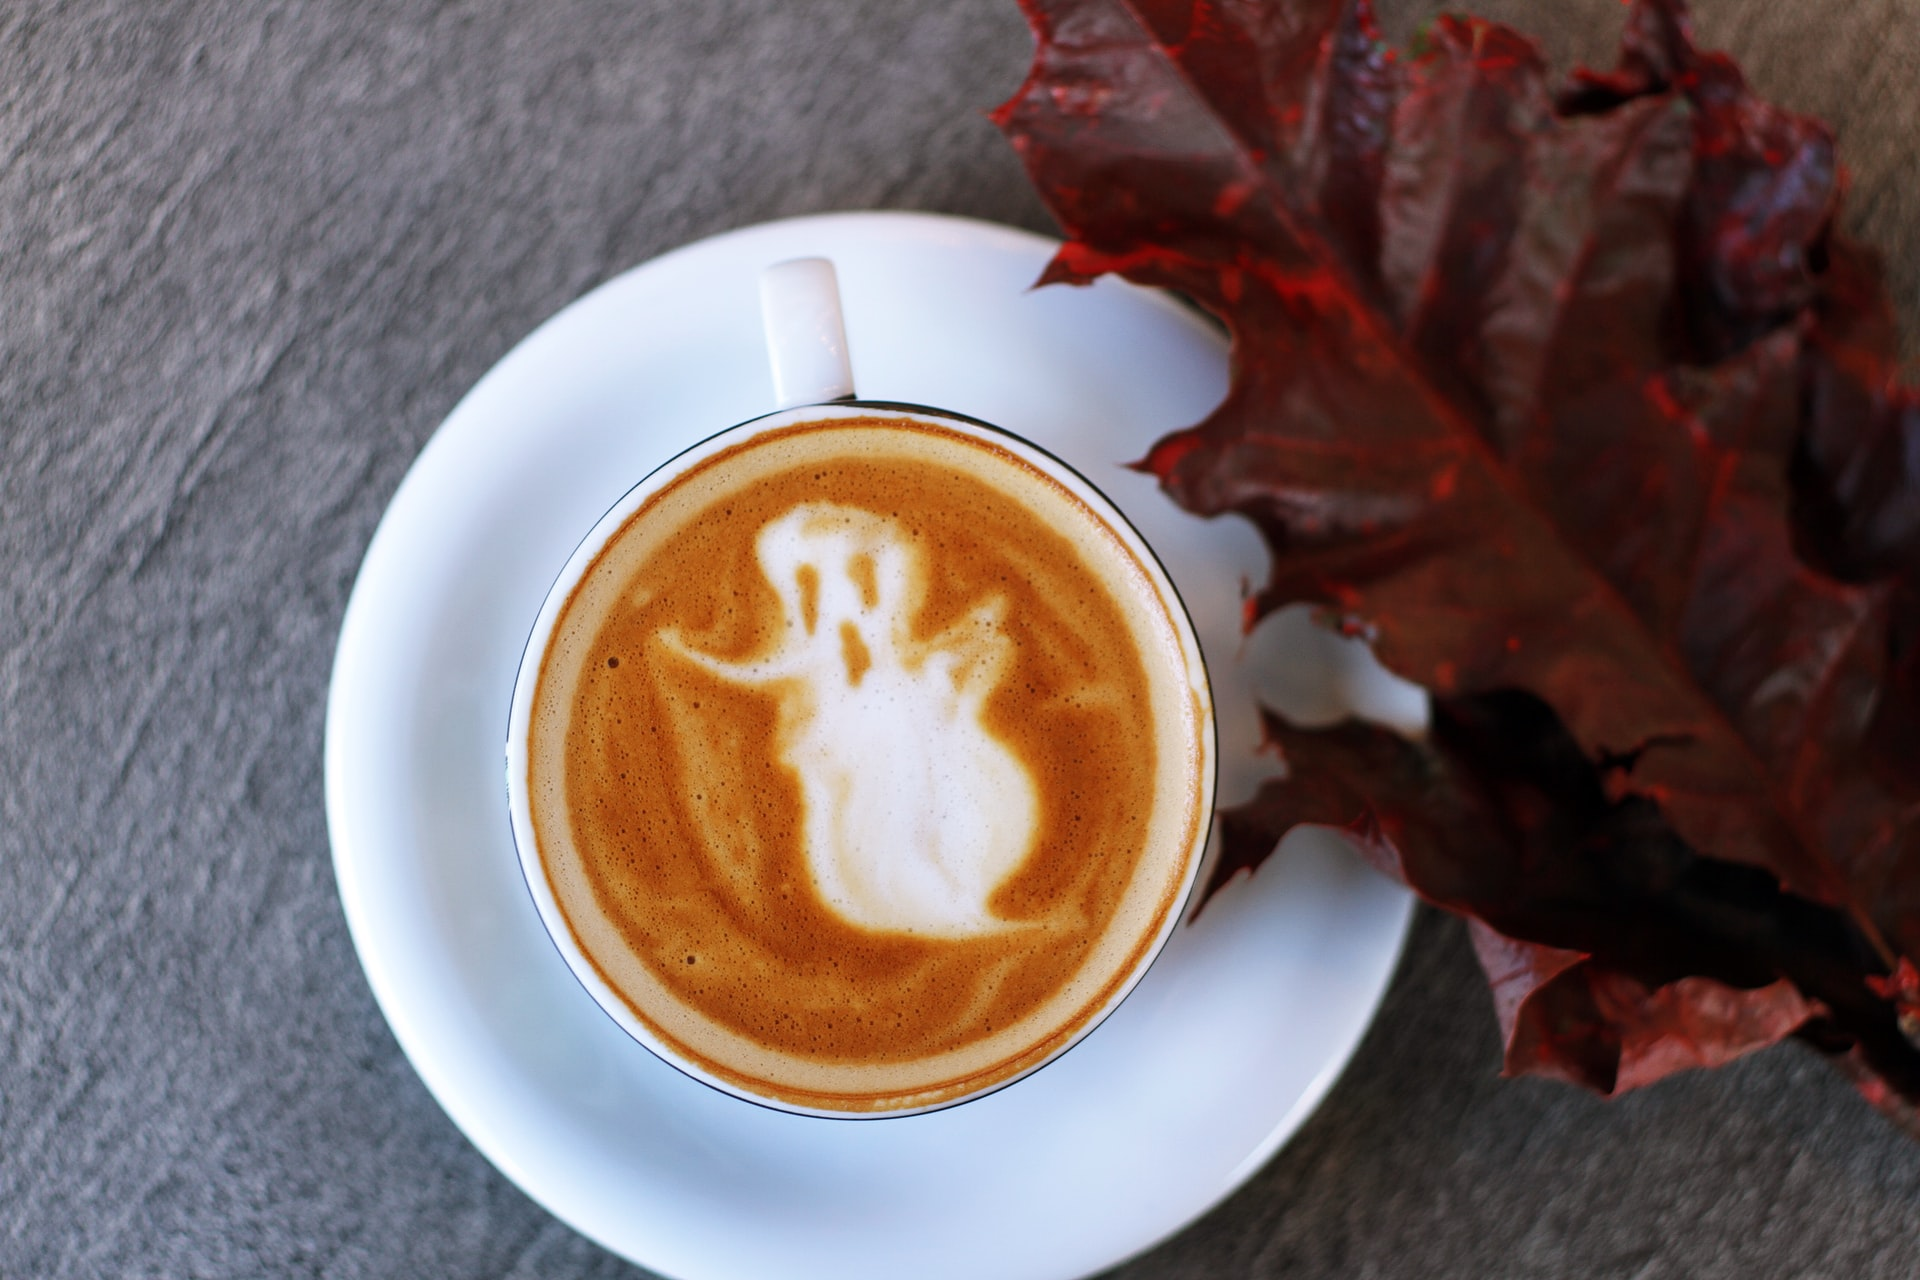 Cup of coffee with a ghost drawn in it